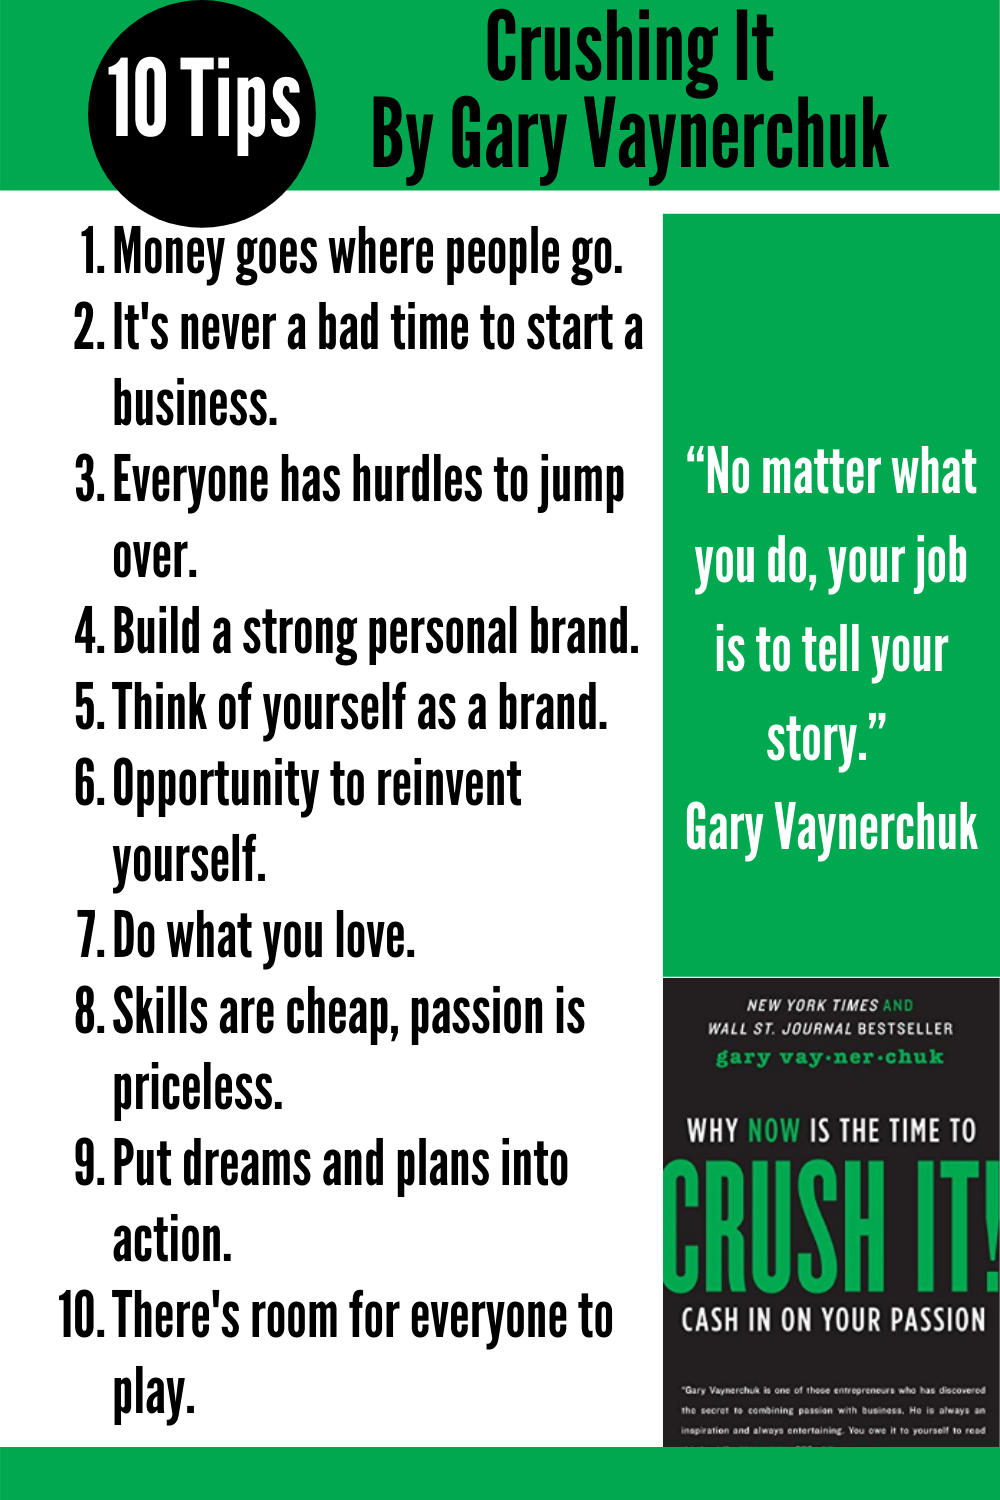 Start Taking Steps Now To Crush It Post Isolation In 2020 Reading Challenge Gary Vaynerchuk Book Reading Tips